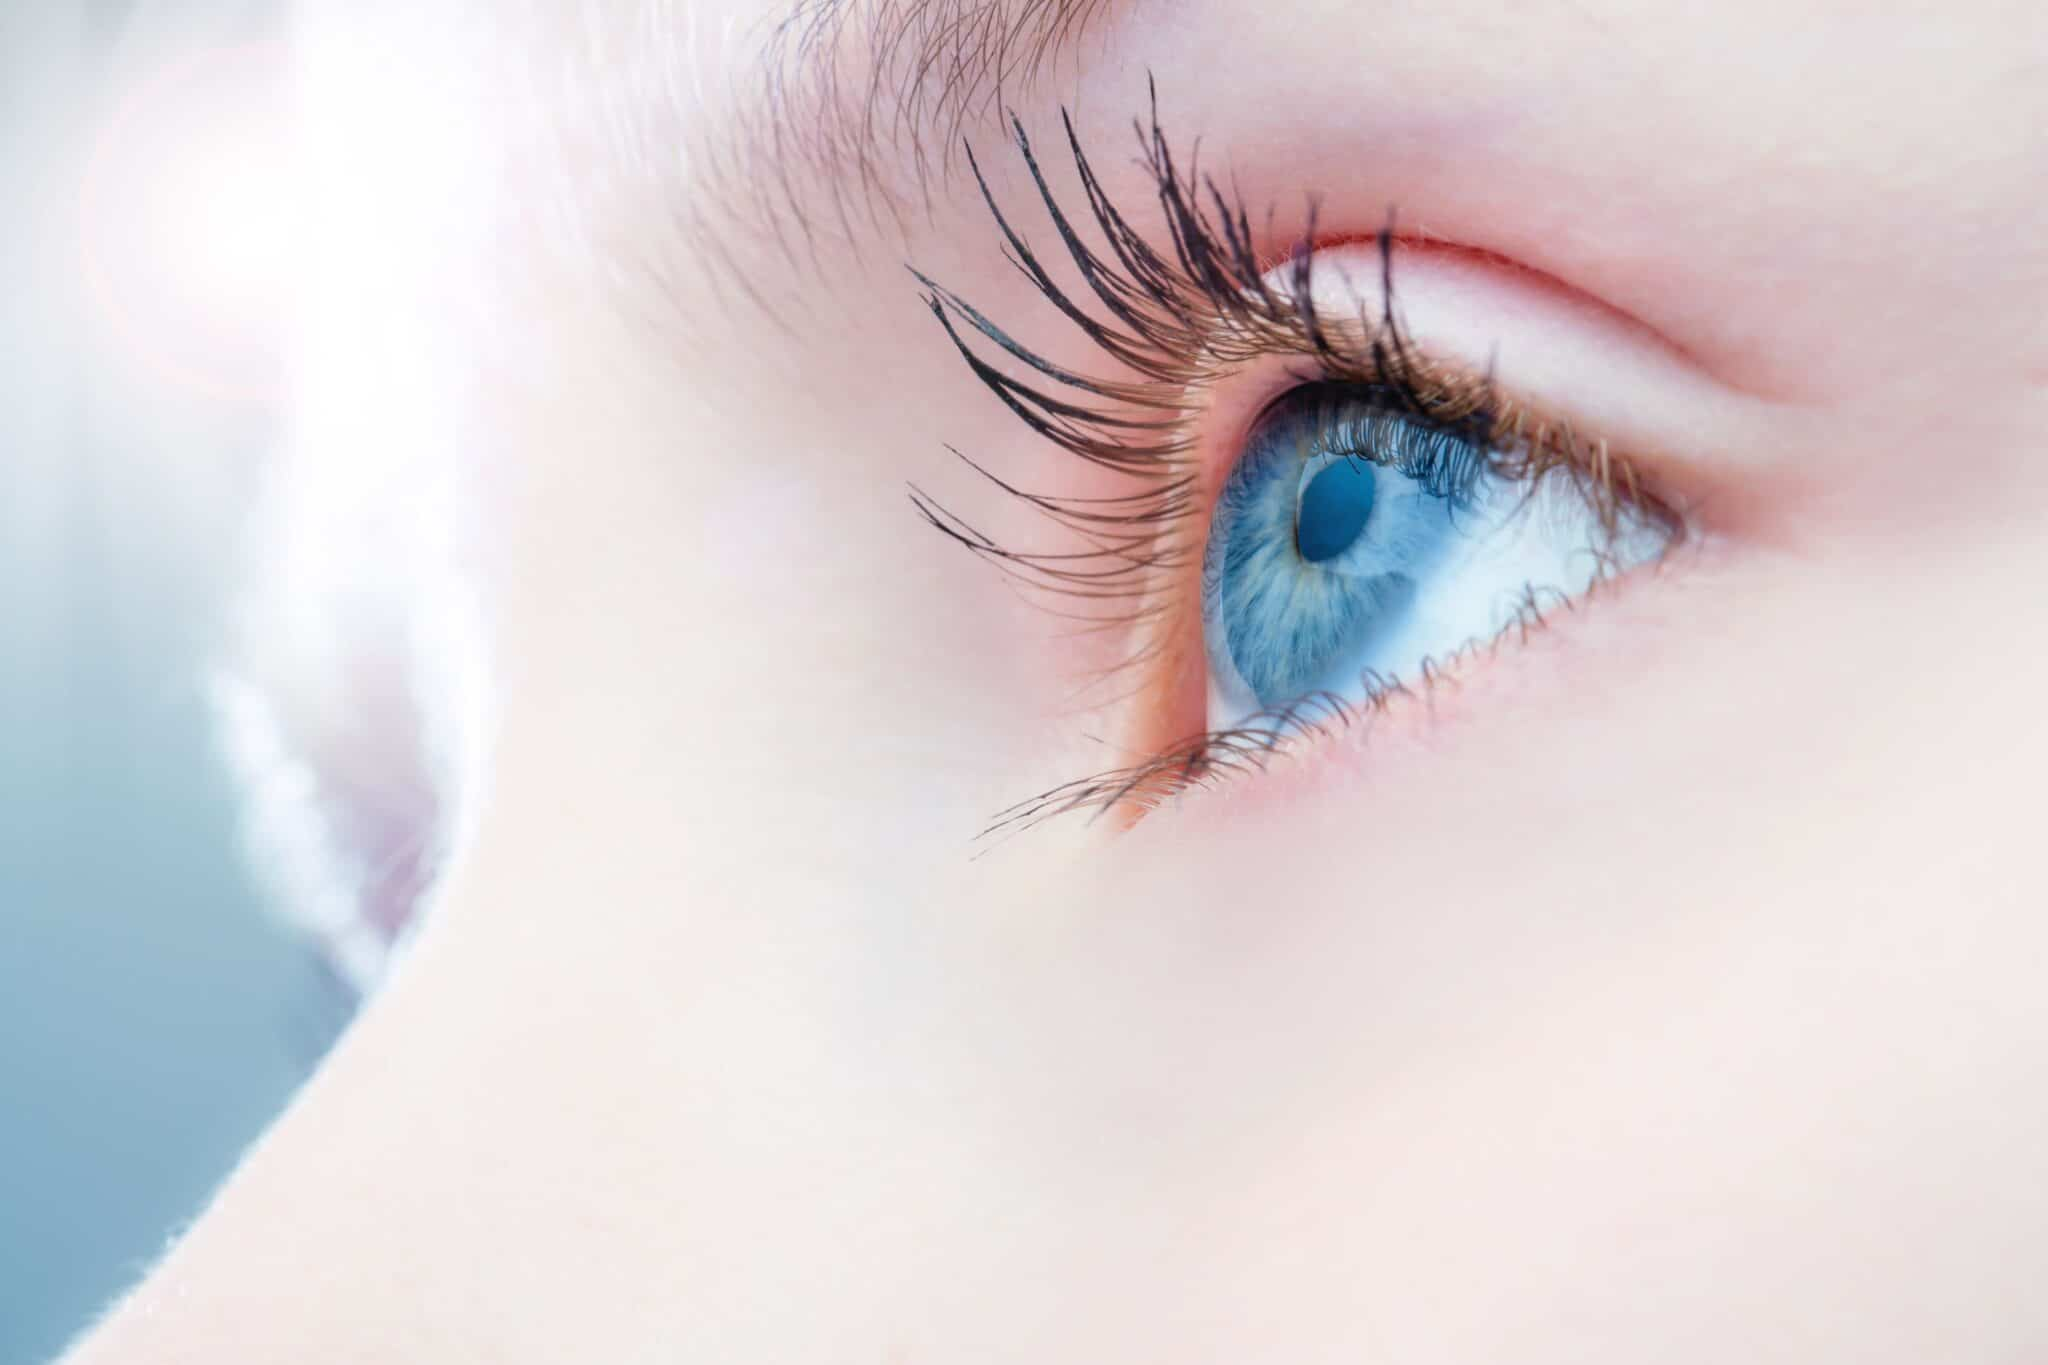 Things You Probably Didn't Know About Glaucoma